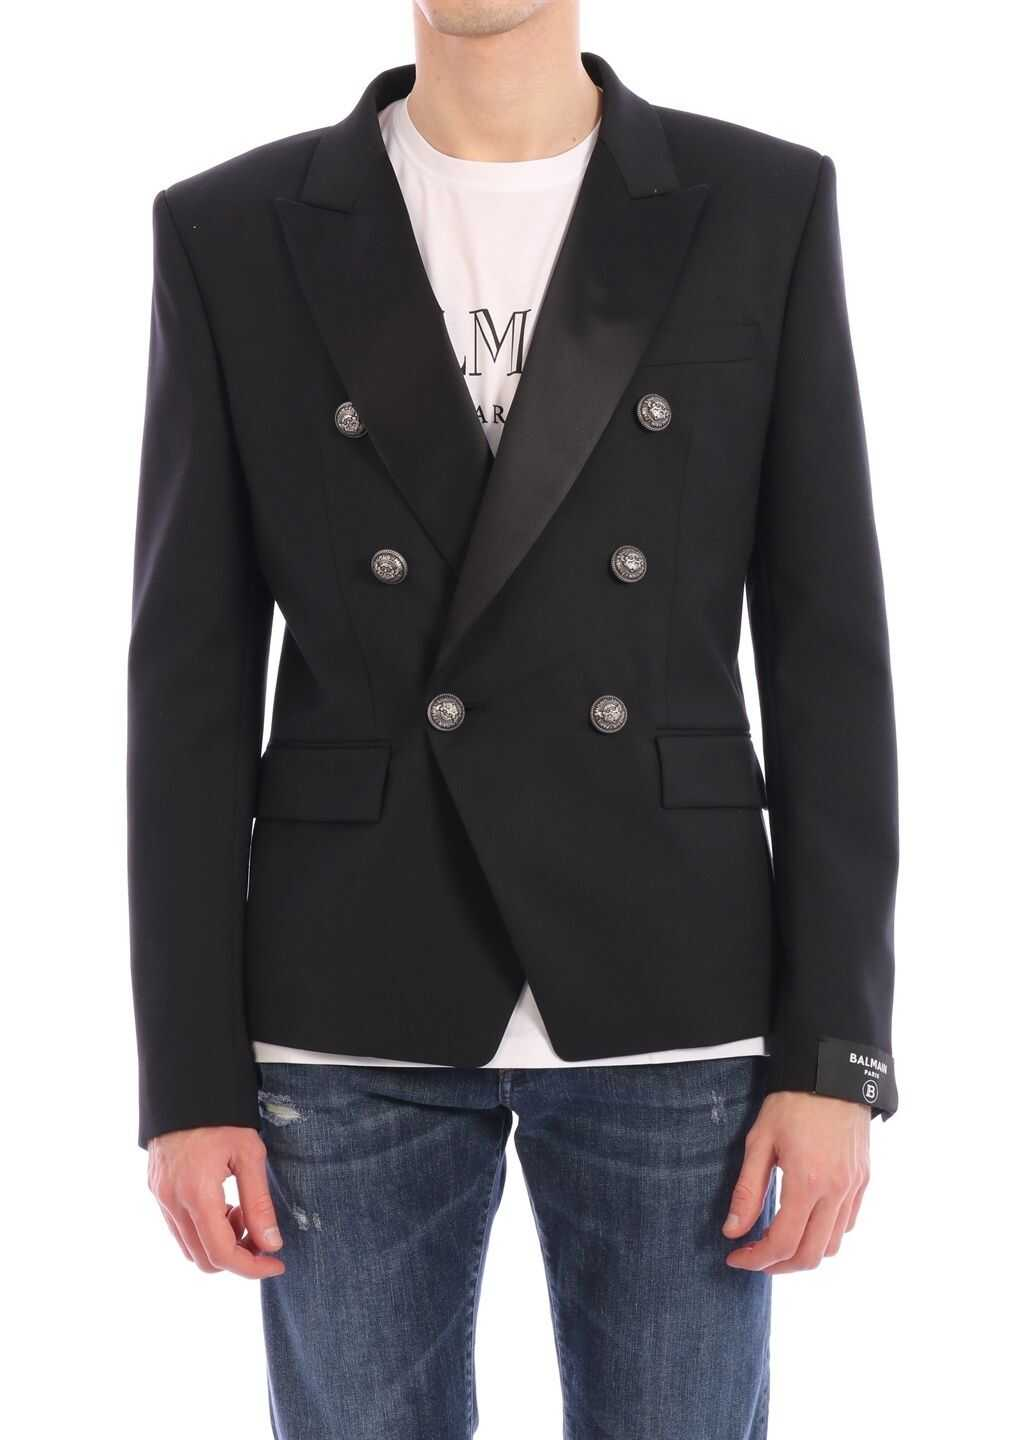 Balmain Double-Breasted Jacket Black imagine